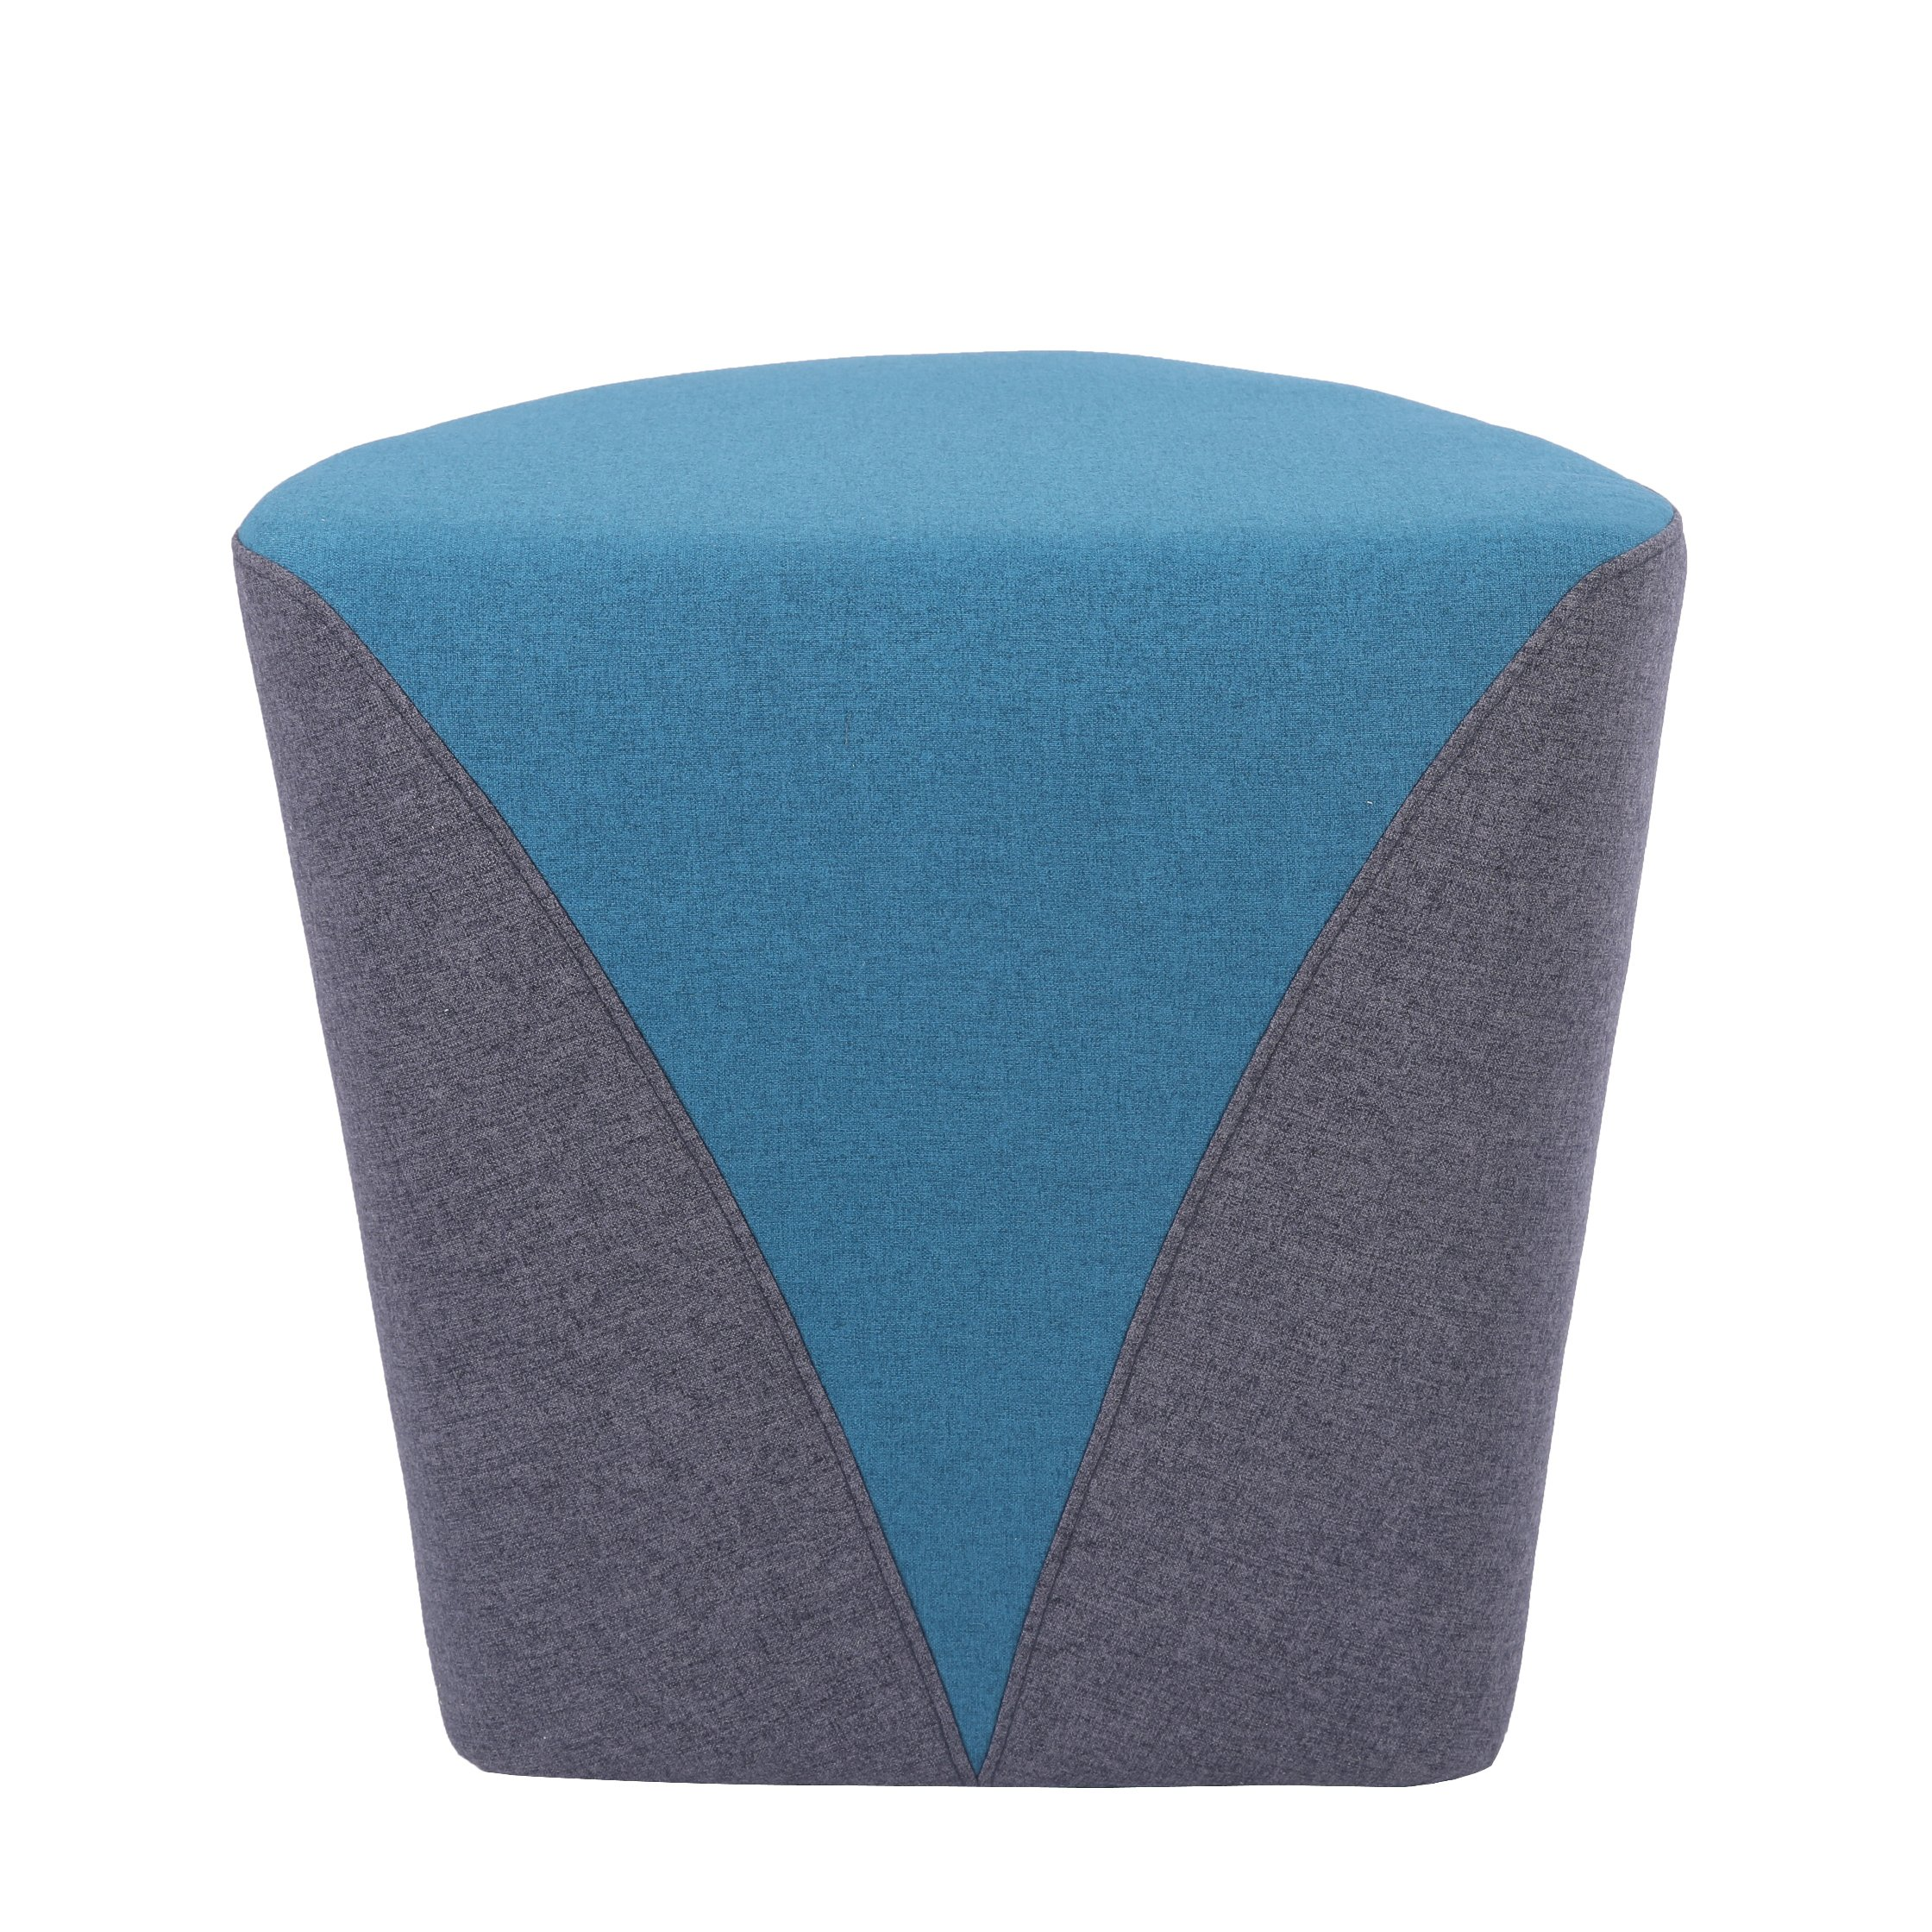 Sunon Heart Upholstered Tufted Puff Ottoman Pouf,18.1''L17.7''W17''H,Fabric Vanity Stool(Light Blue) by Sunon